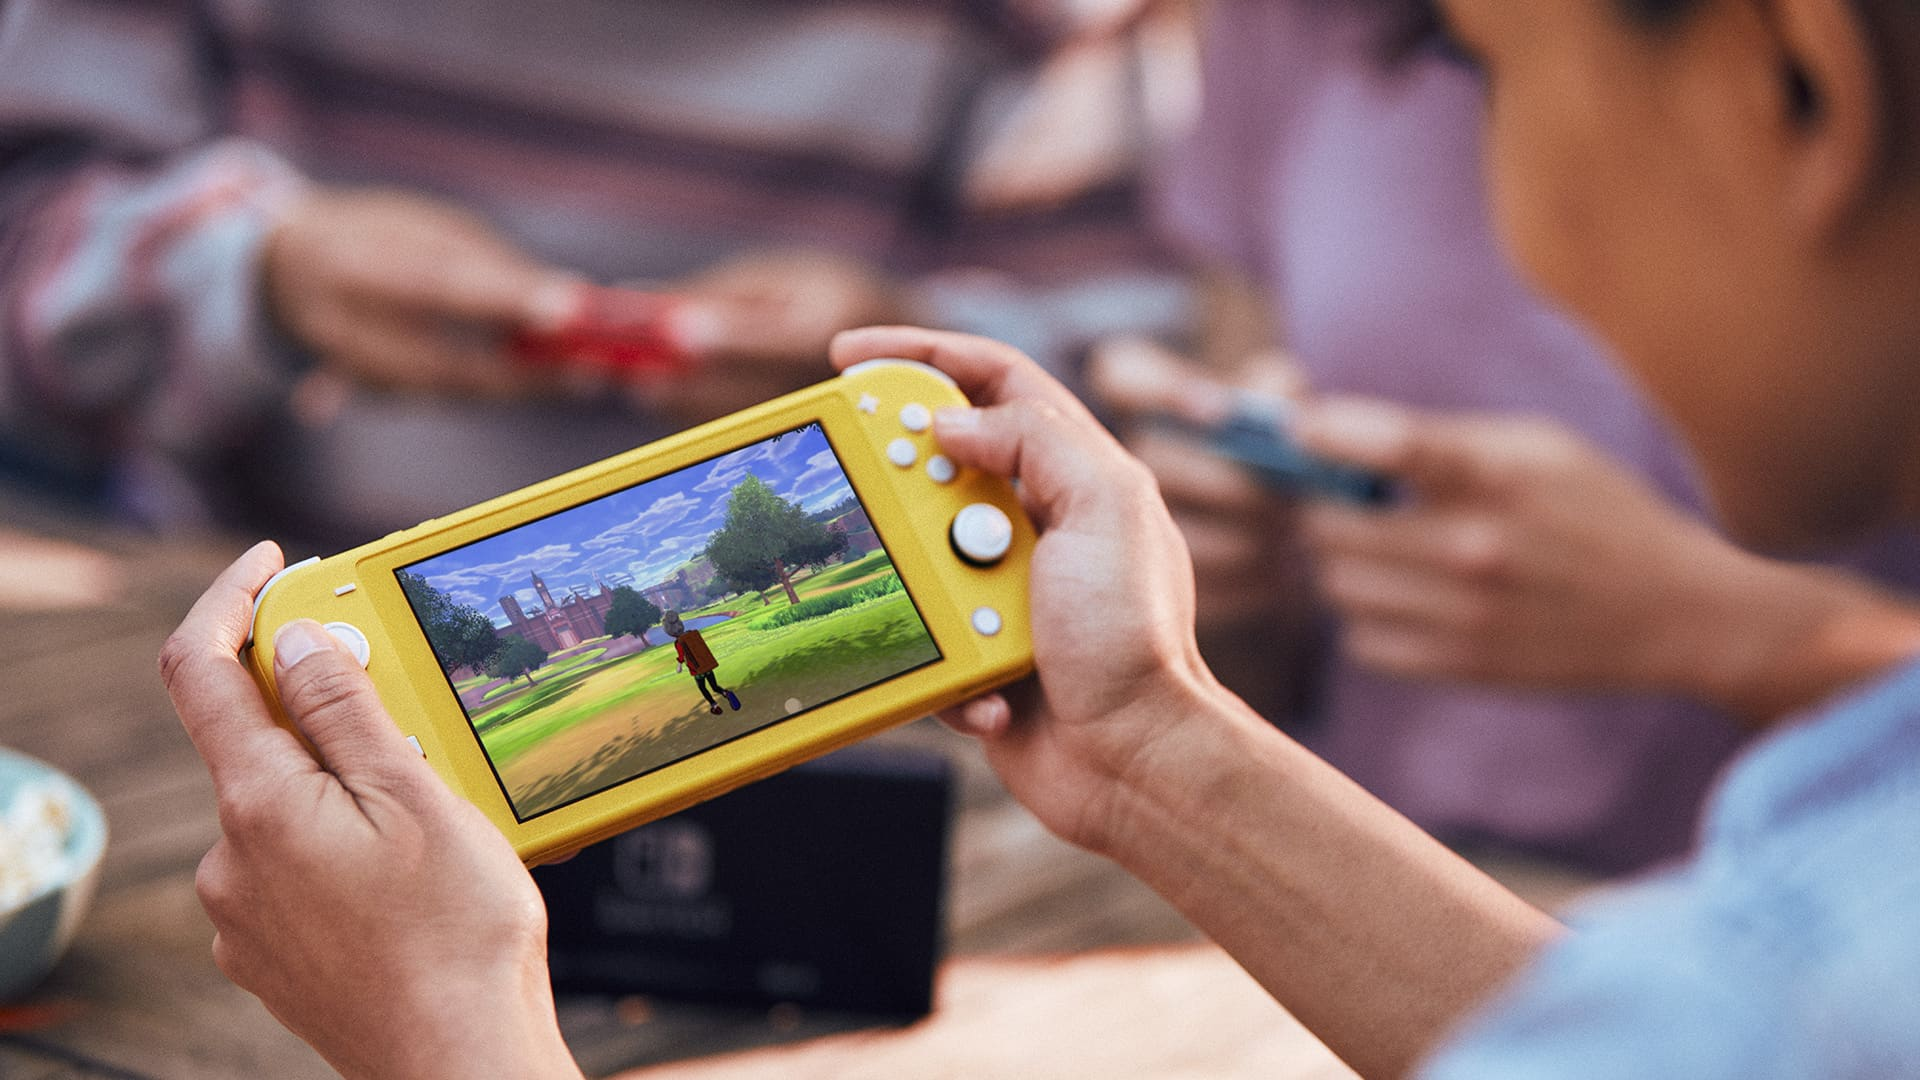 Differences between Nintendo Switch Lite and the original Switch